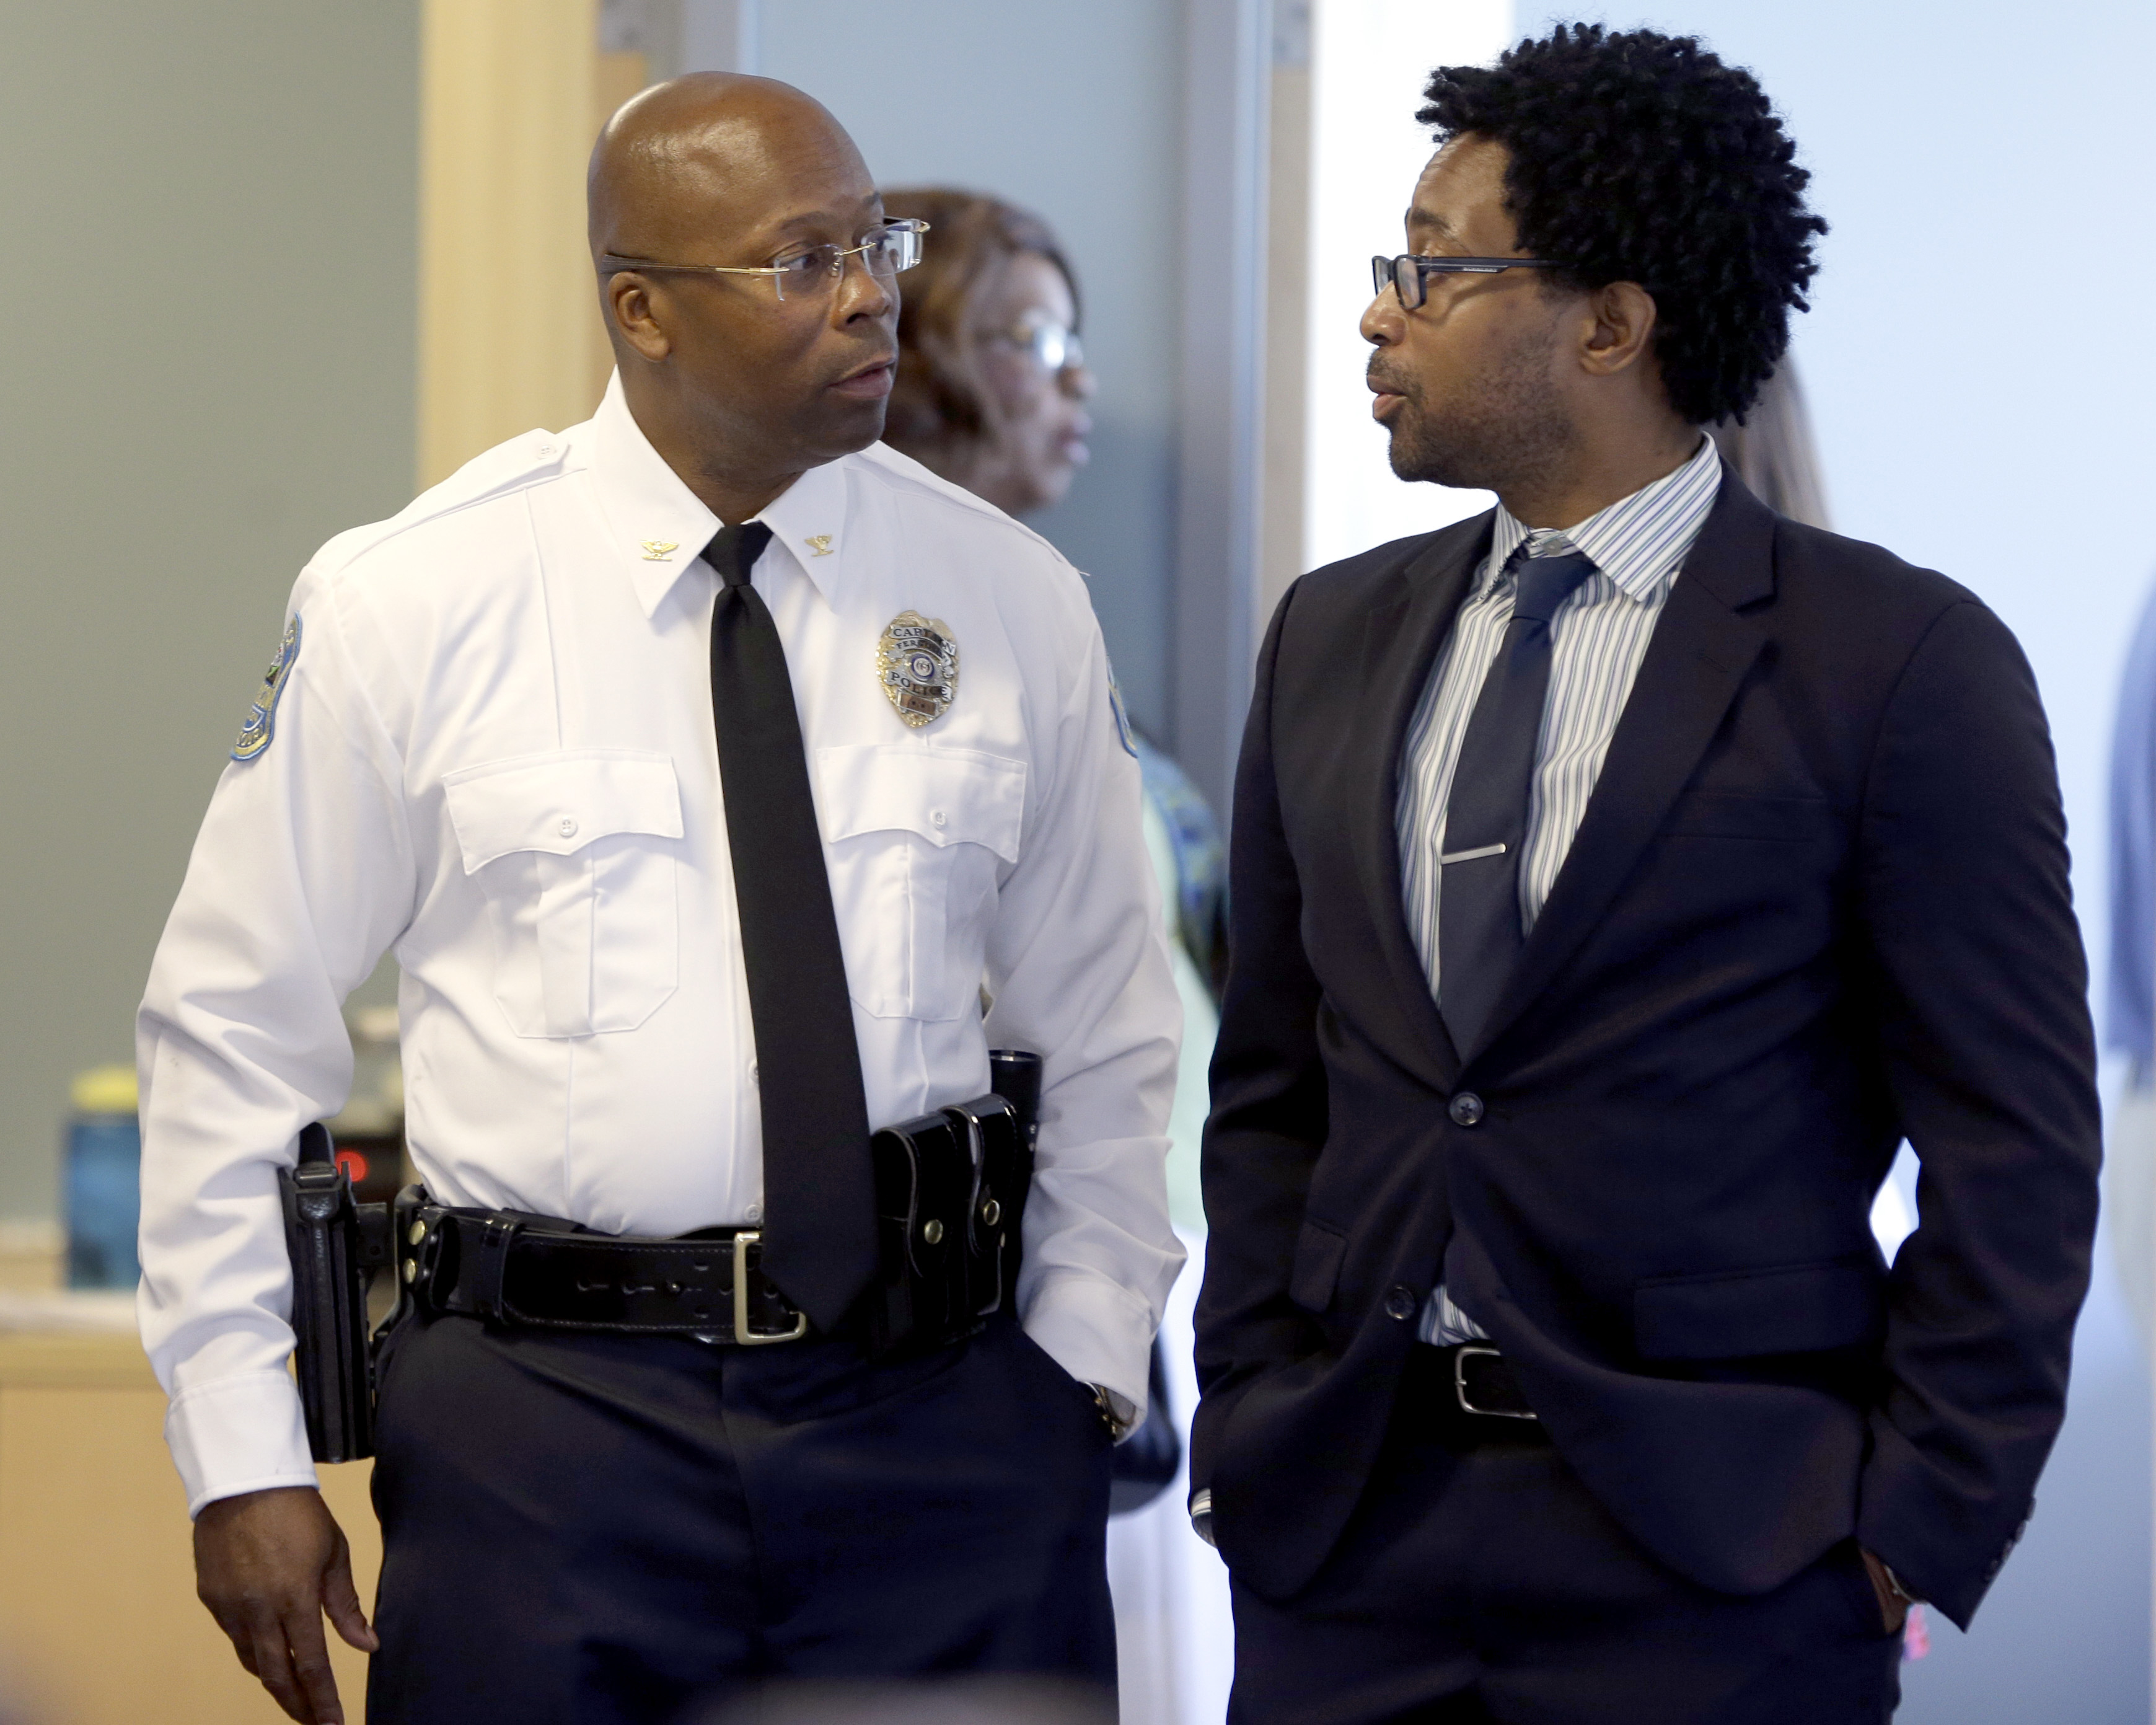 Andre Anderson, left, speaks with Ferguson City Council member Wesley Bell after being introduced as the the interim chief of the Ferguson Police Department during a news conference on July 22, 2015, in Ferguson, Mo.